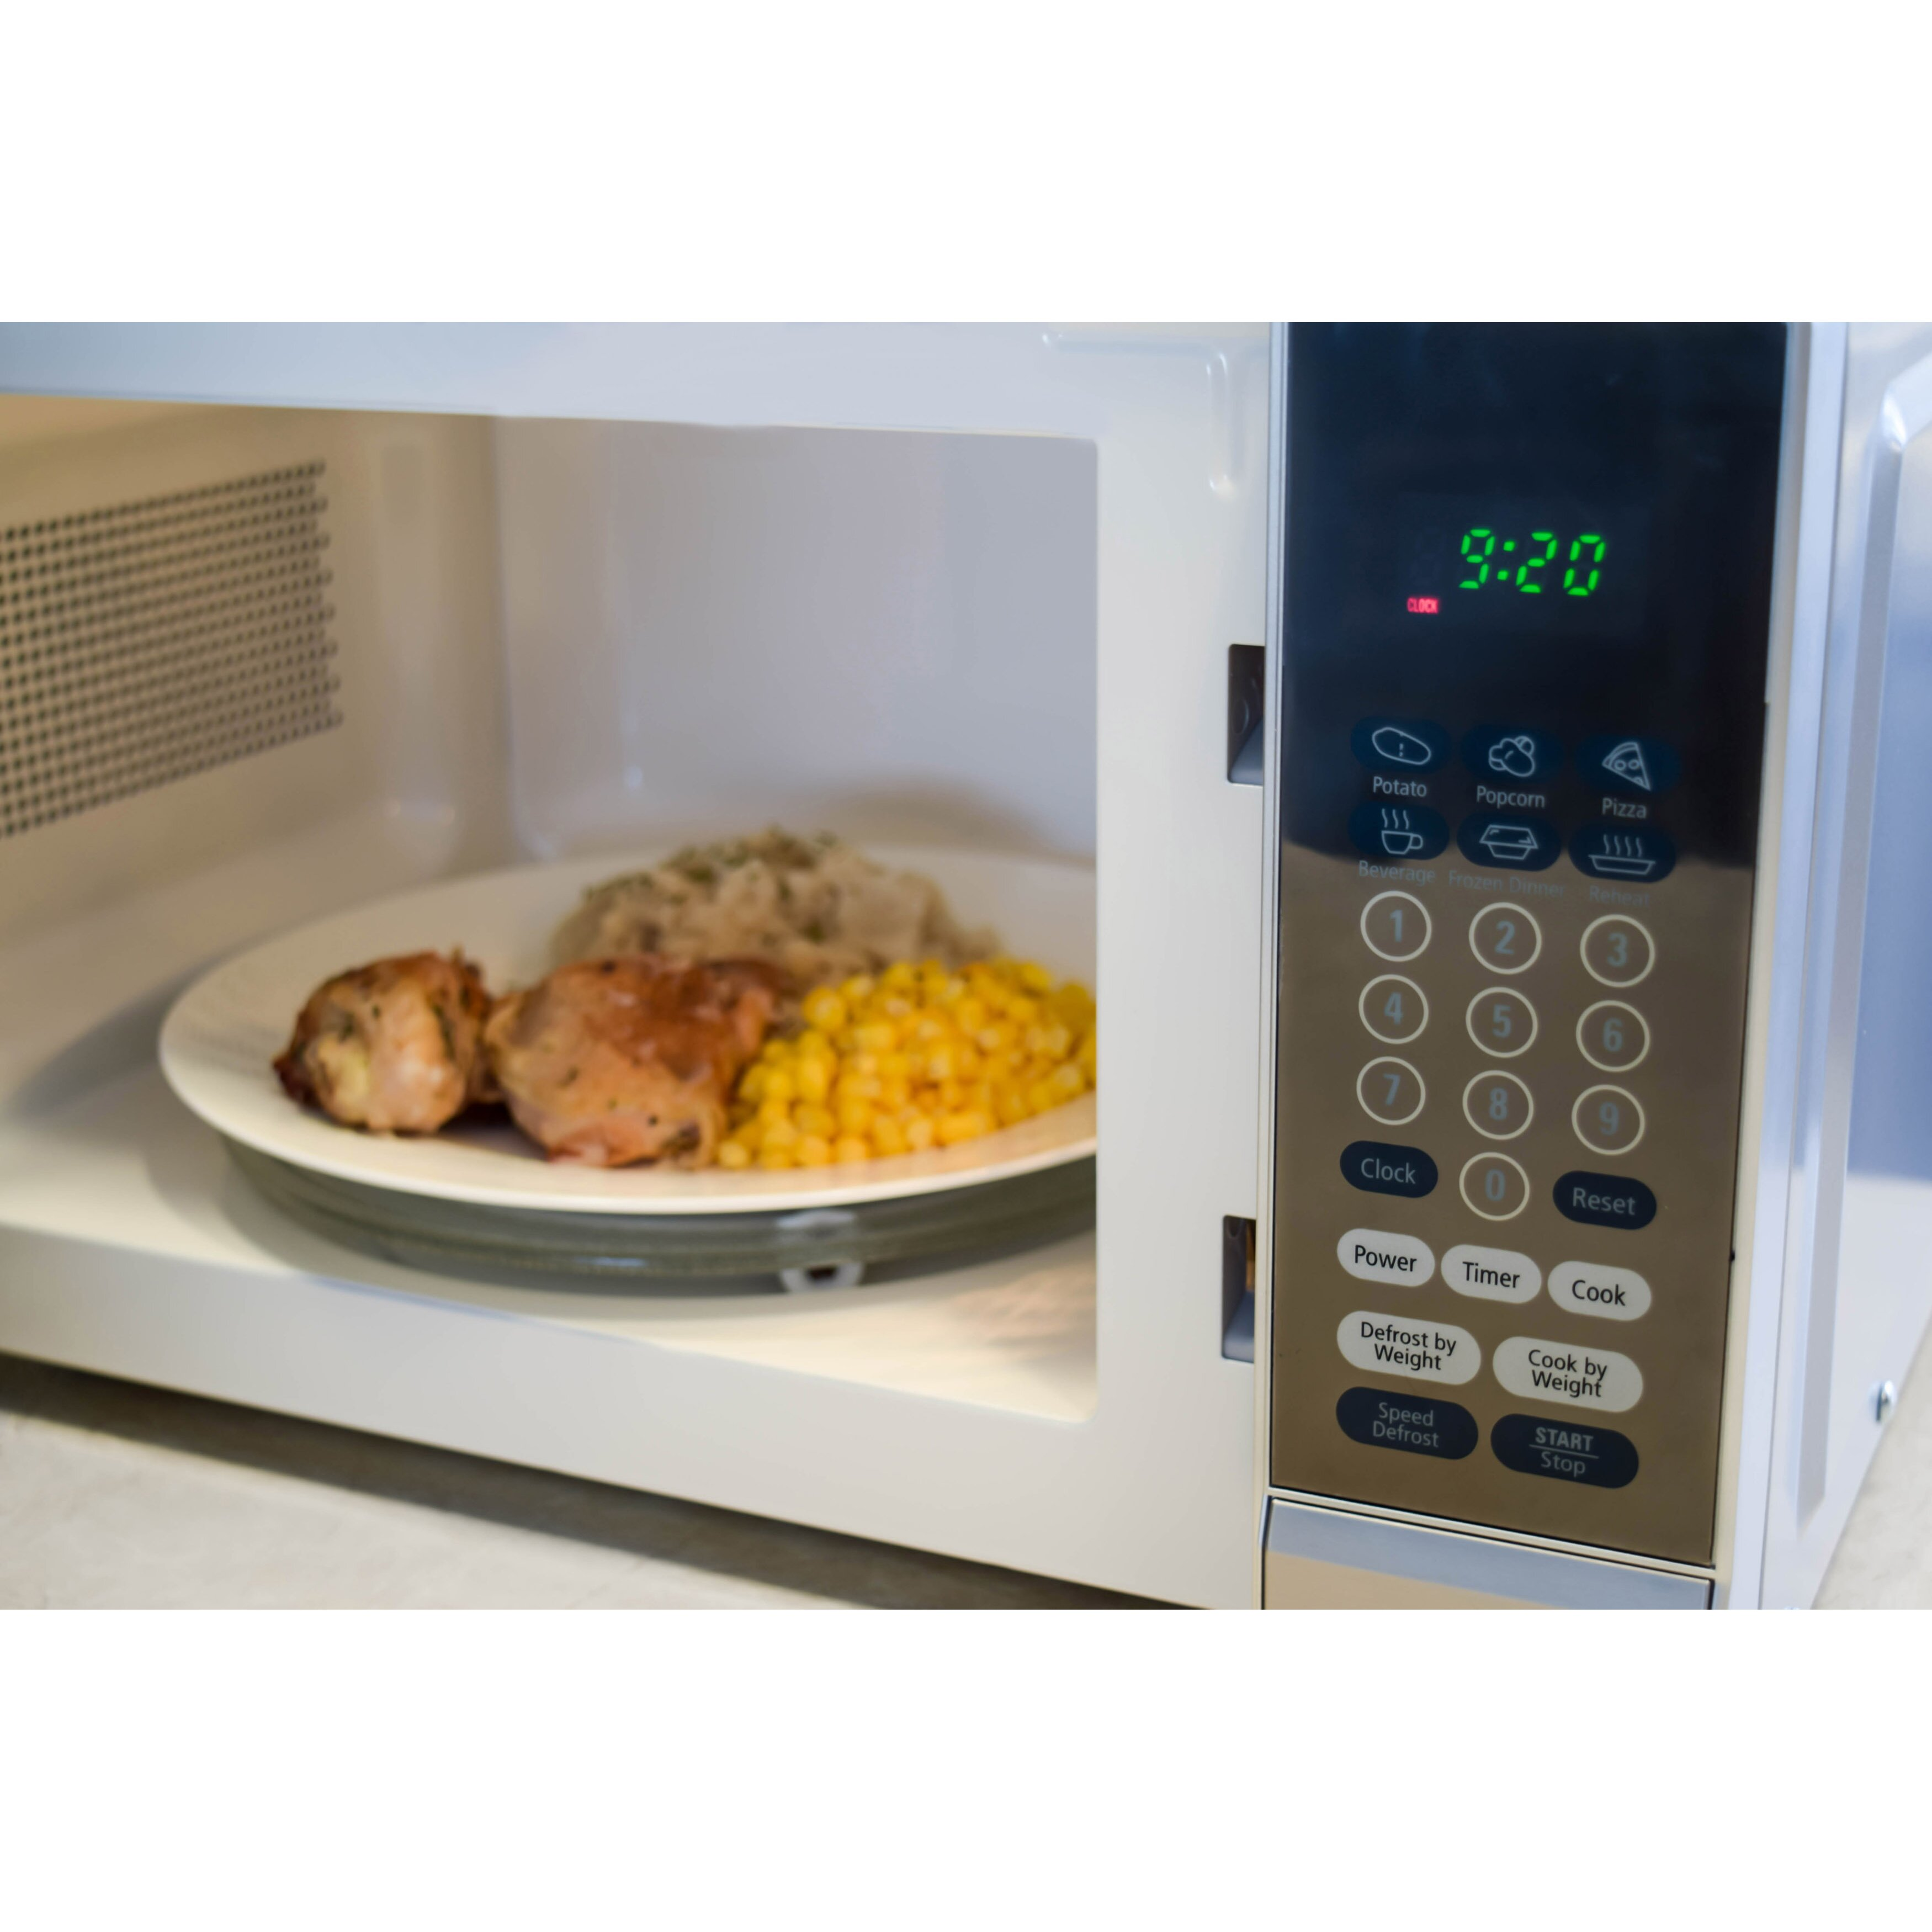 Countertop Microwave Sale Canada : Oster 17.8